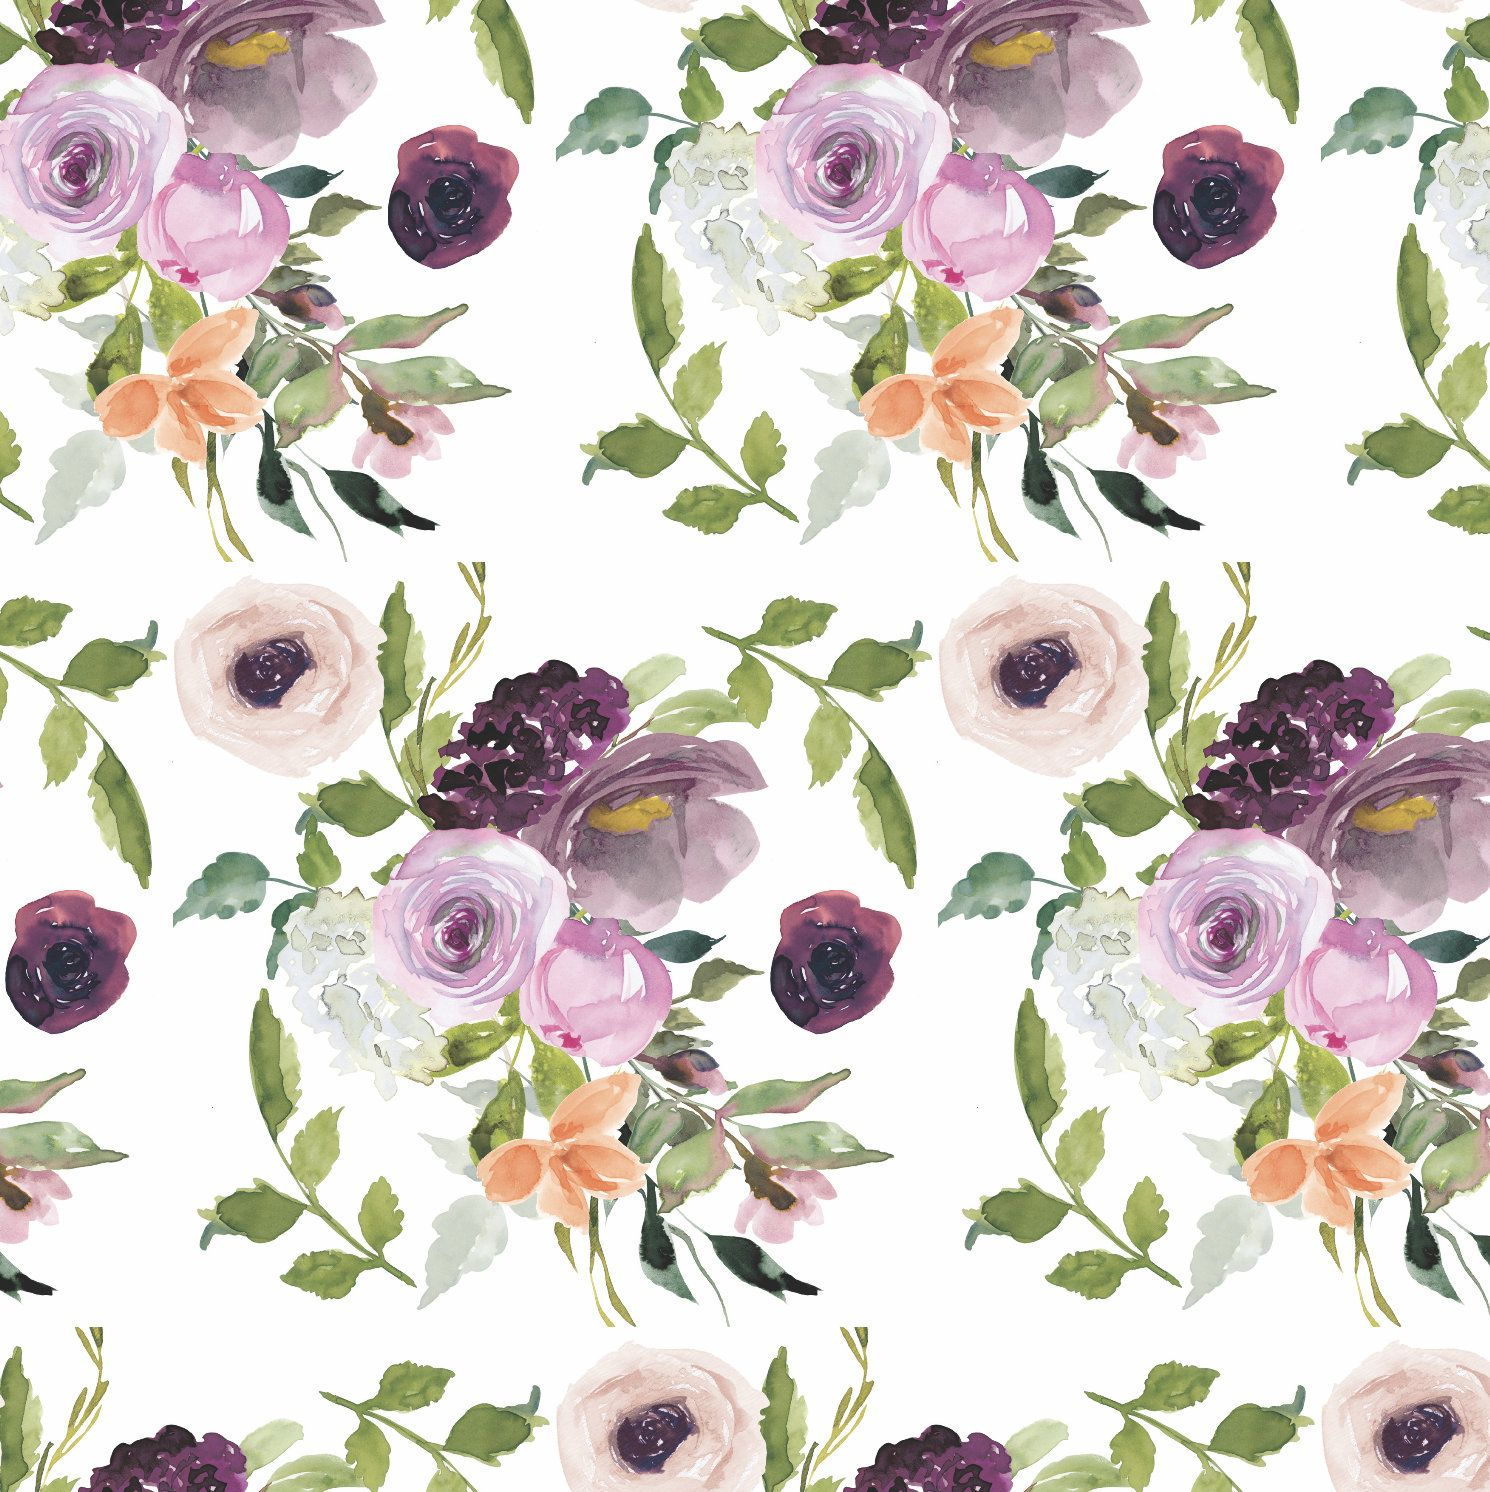 Floral Fabric Flower Fabric Cotton Fabric Knit Fabric Fabric By The Yard Flower Prints Floral Prints Quil Floral Printables Floral Prints Fabric Flowers